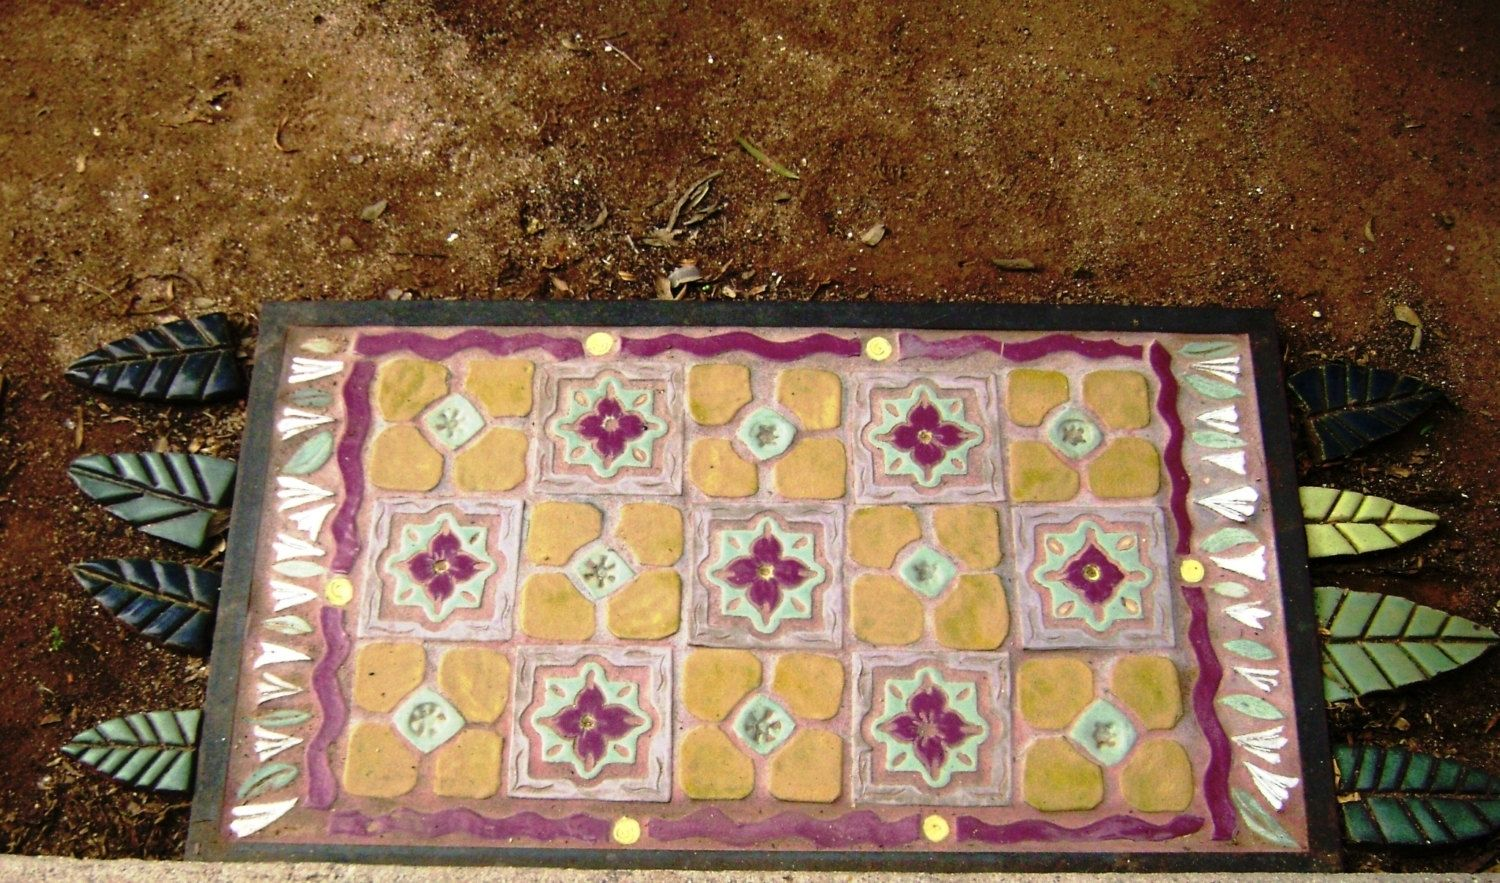 how to make a rug out of carpet tiles